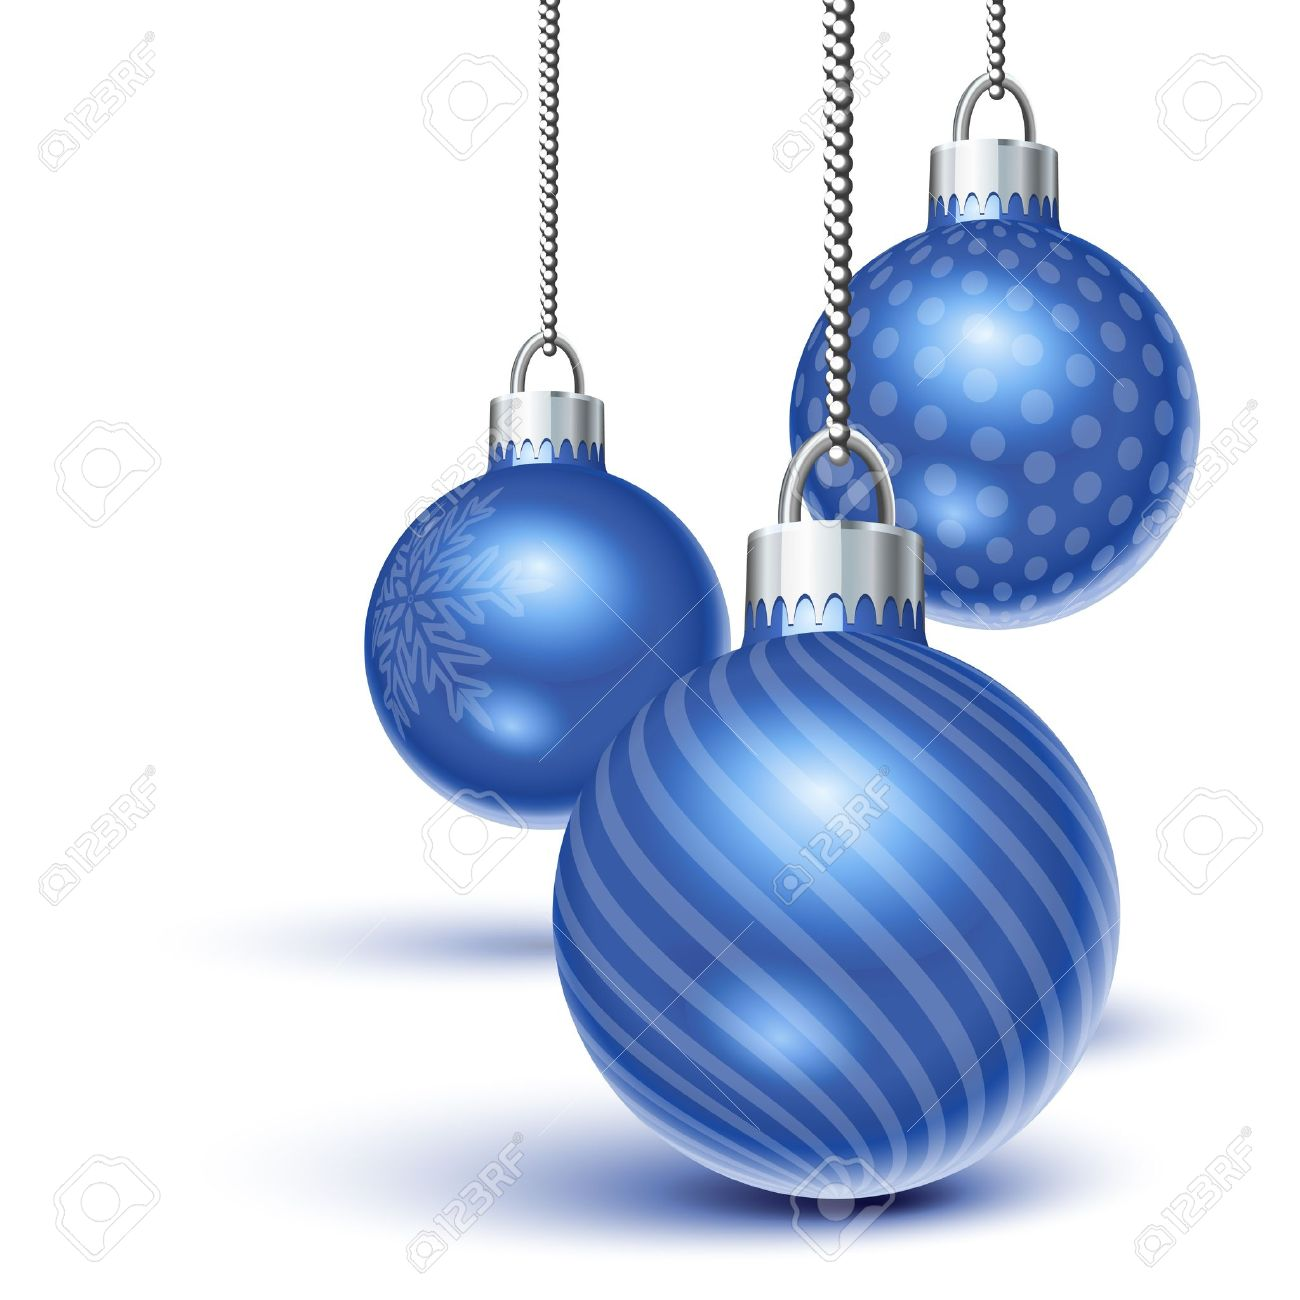 Blue Christmas Ornaments Hanging Over White Royalty Free Cliparts ...